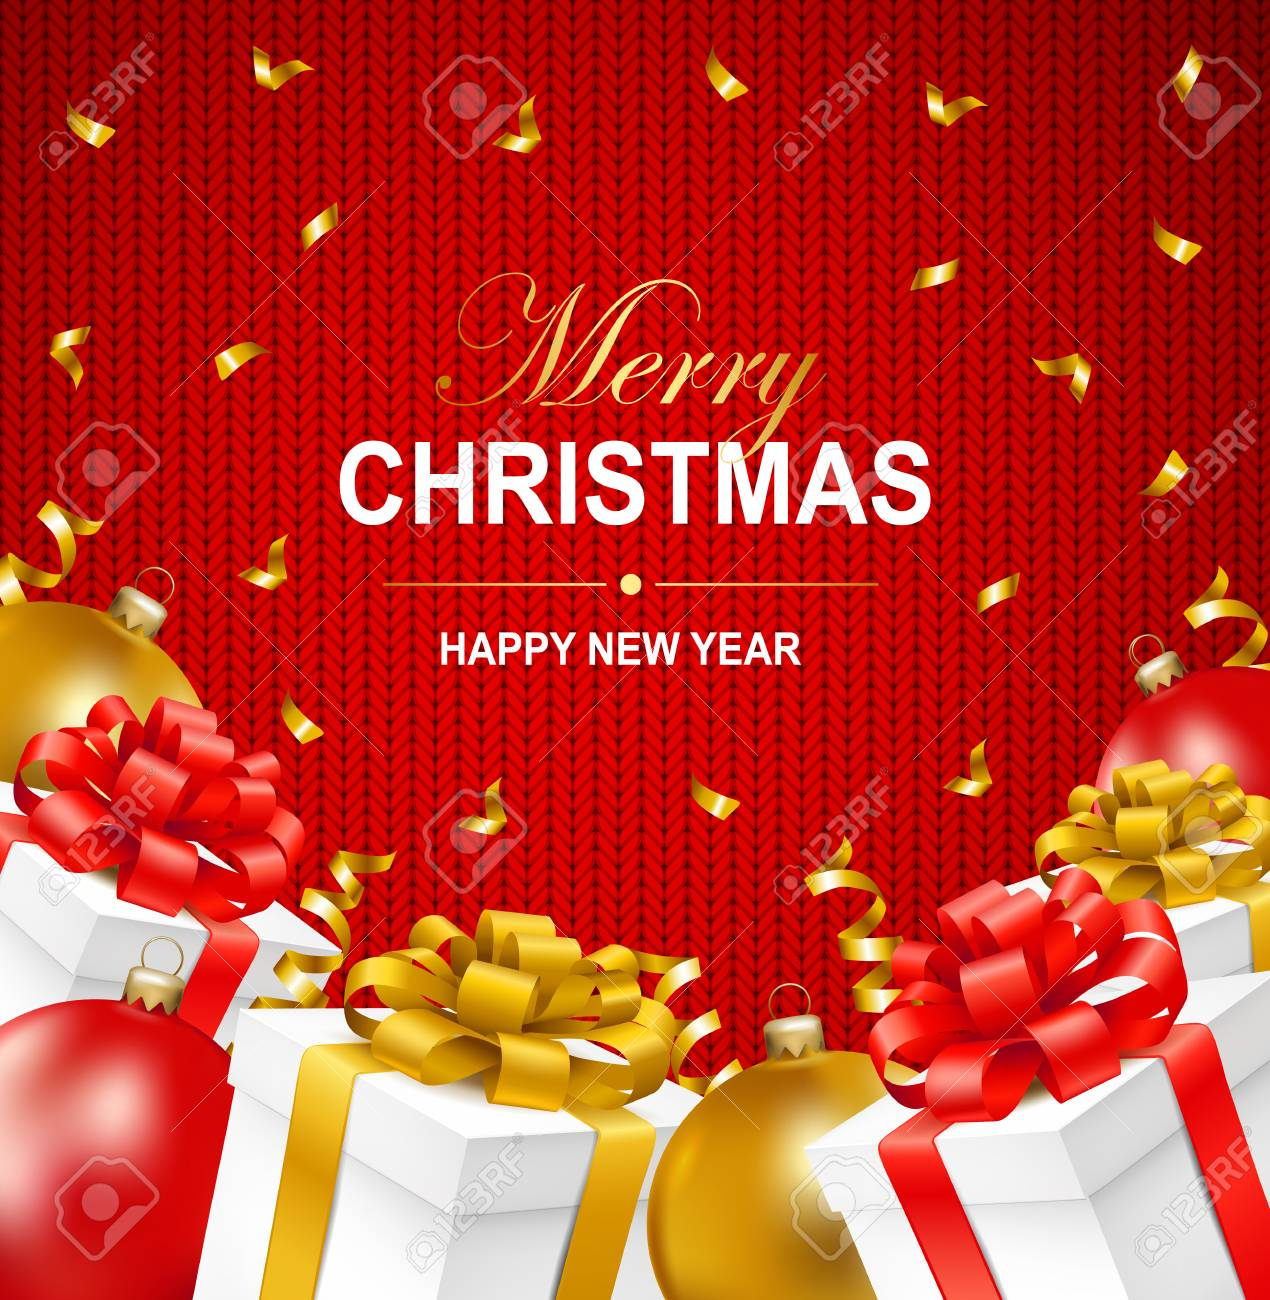 Merry Christmas And Happy New Year Greeting Illustration With